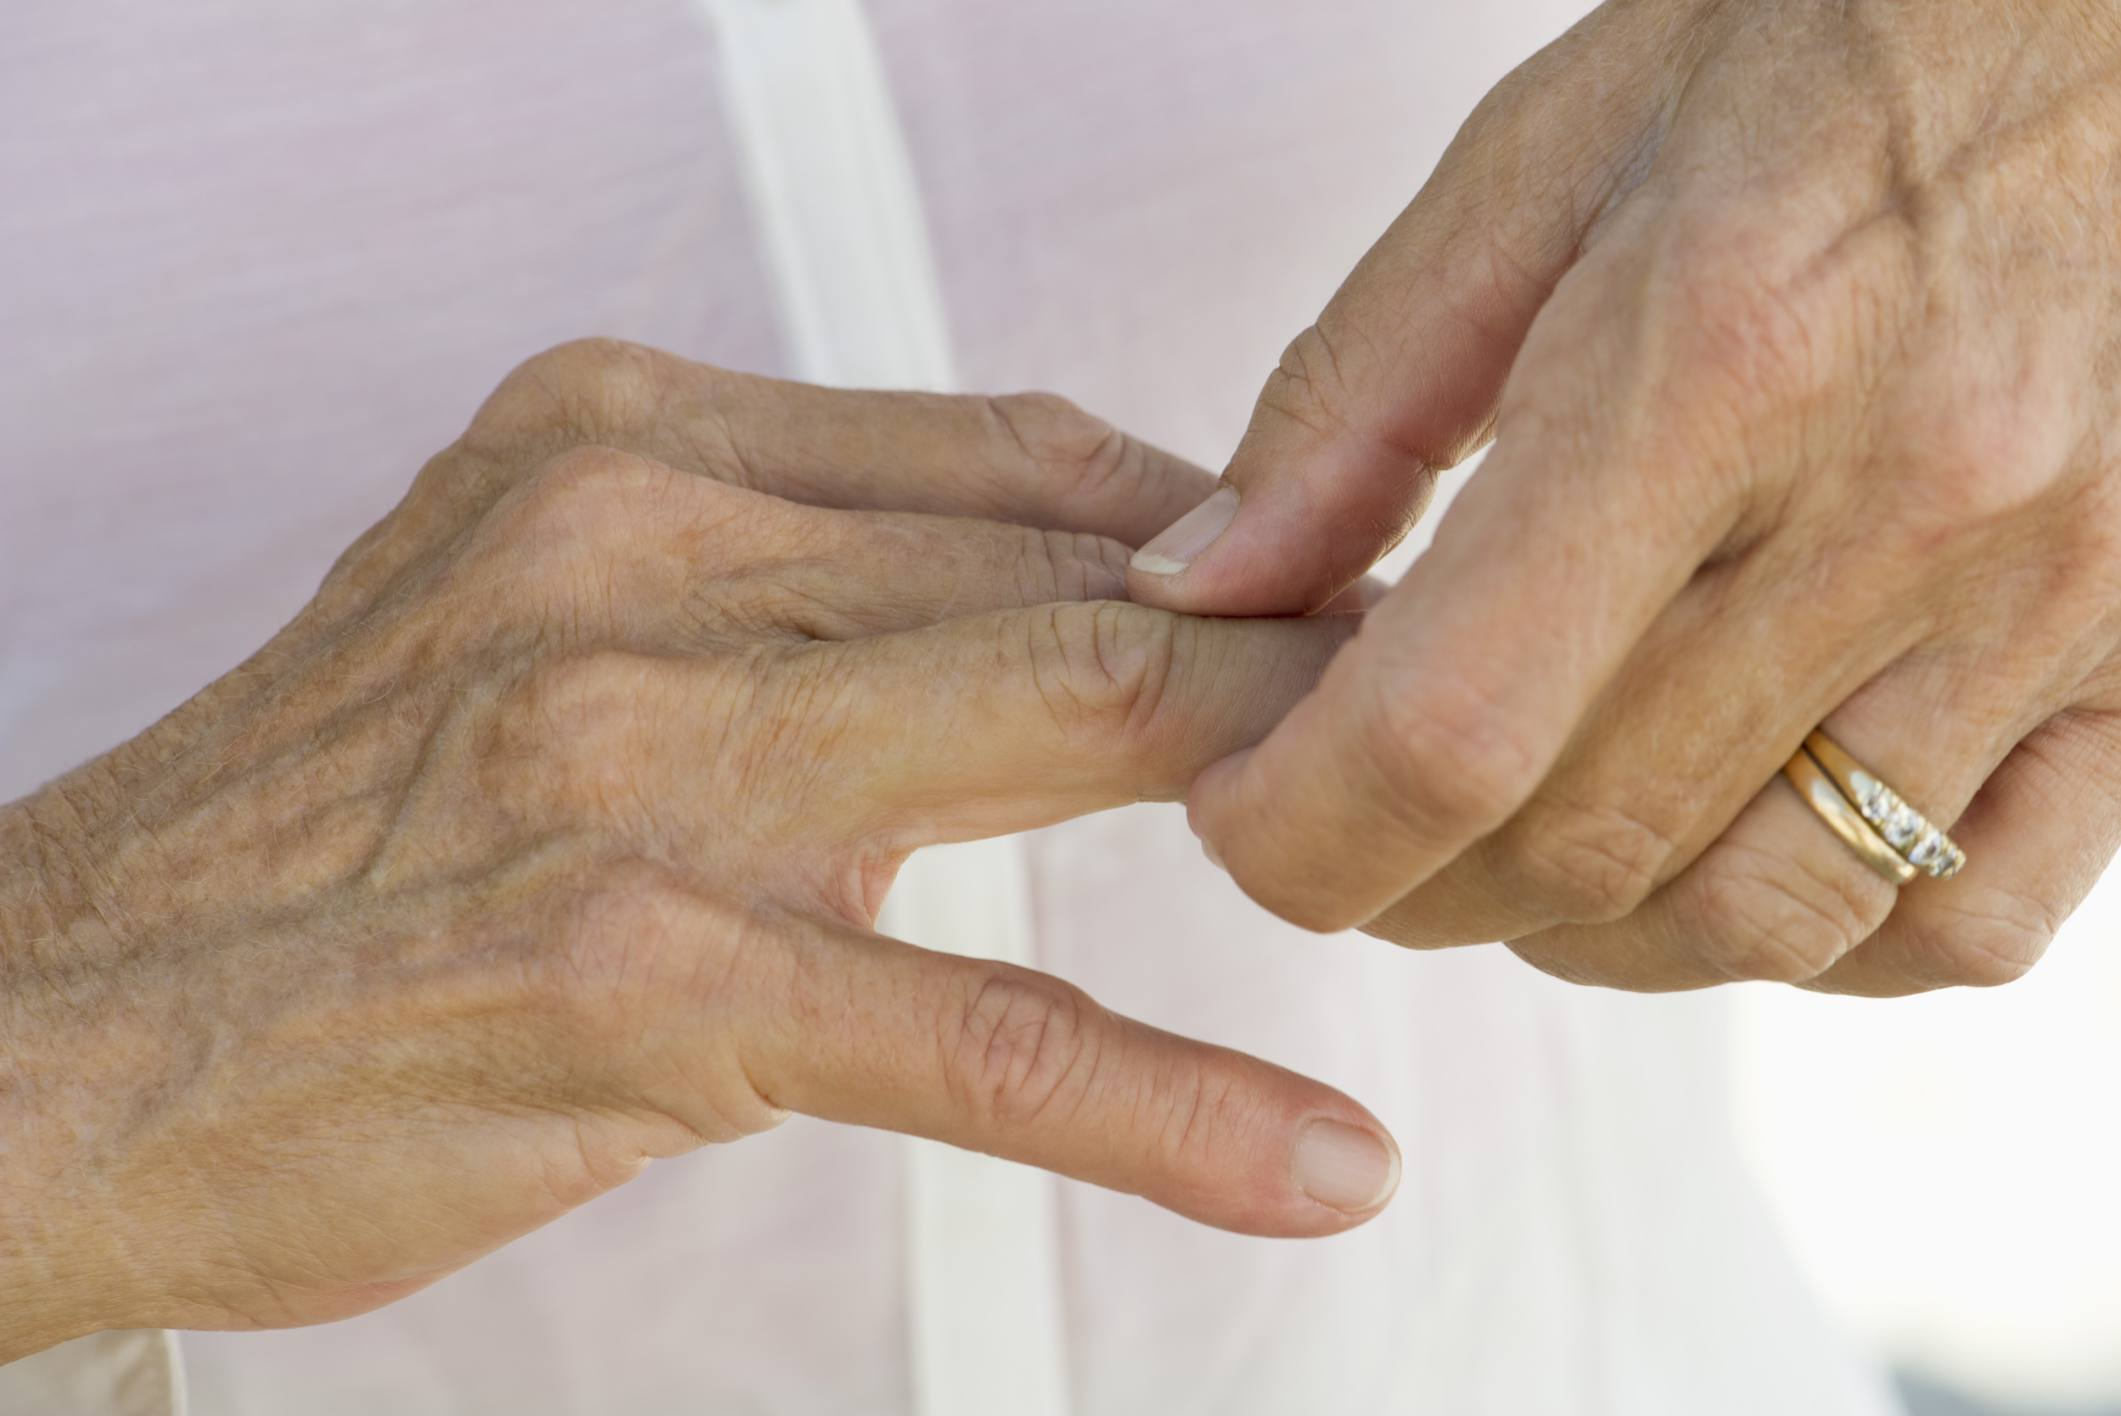 Woman cracking knuckles on hand